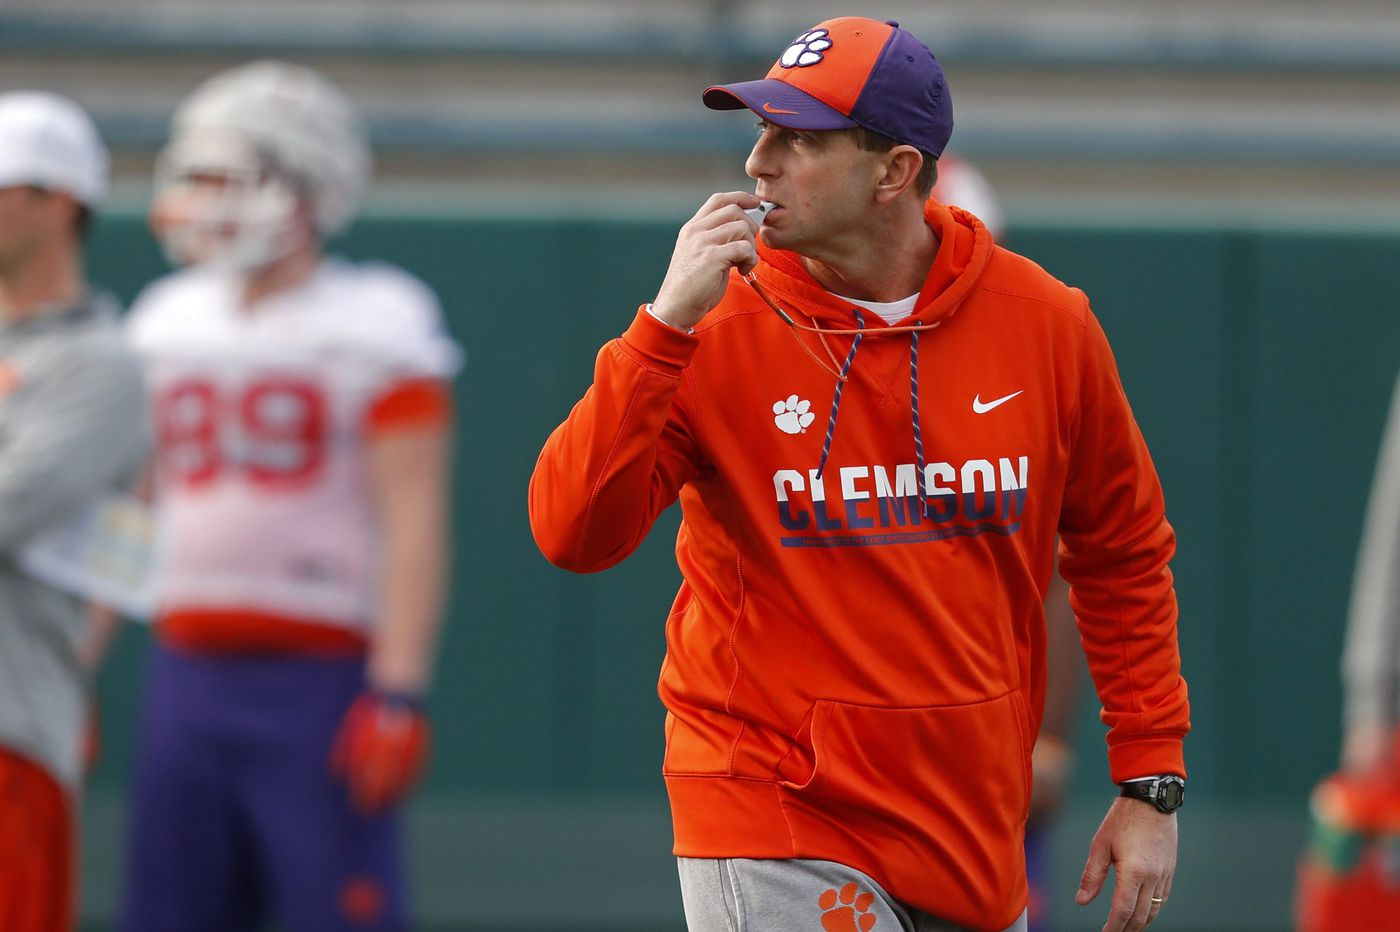 Can Clemson unseat Alabama to win it all? | National college football preview